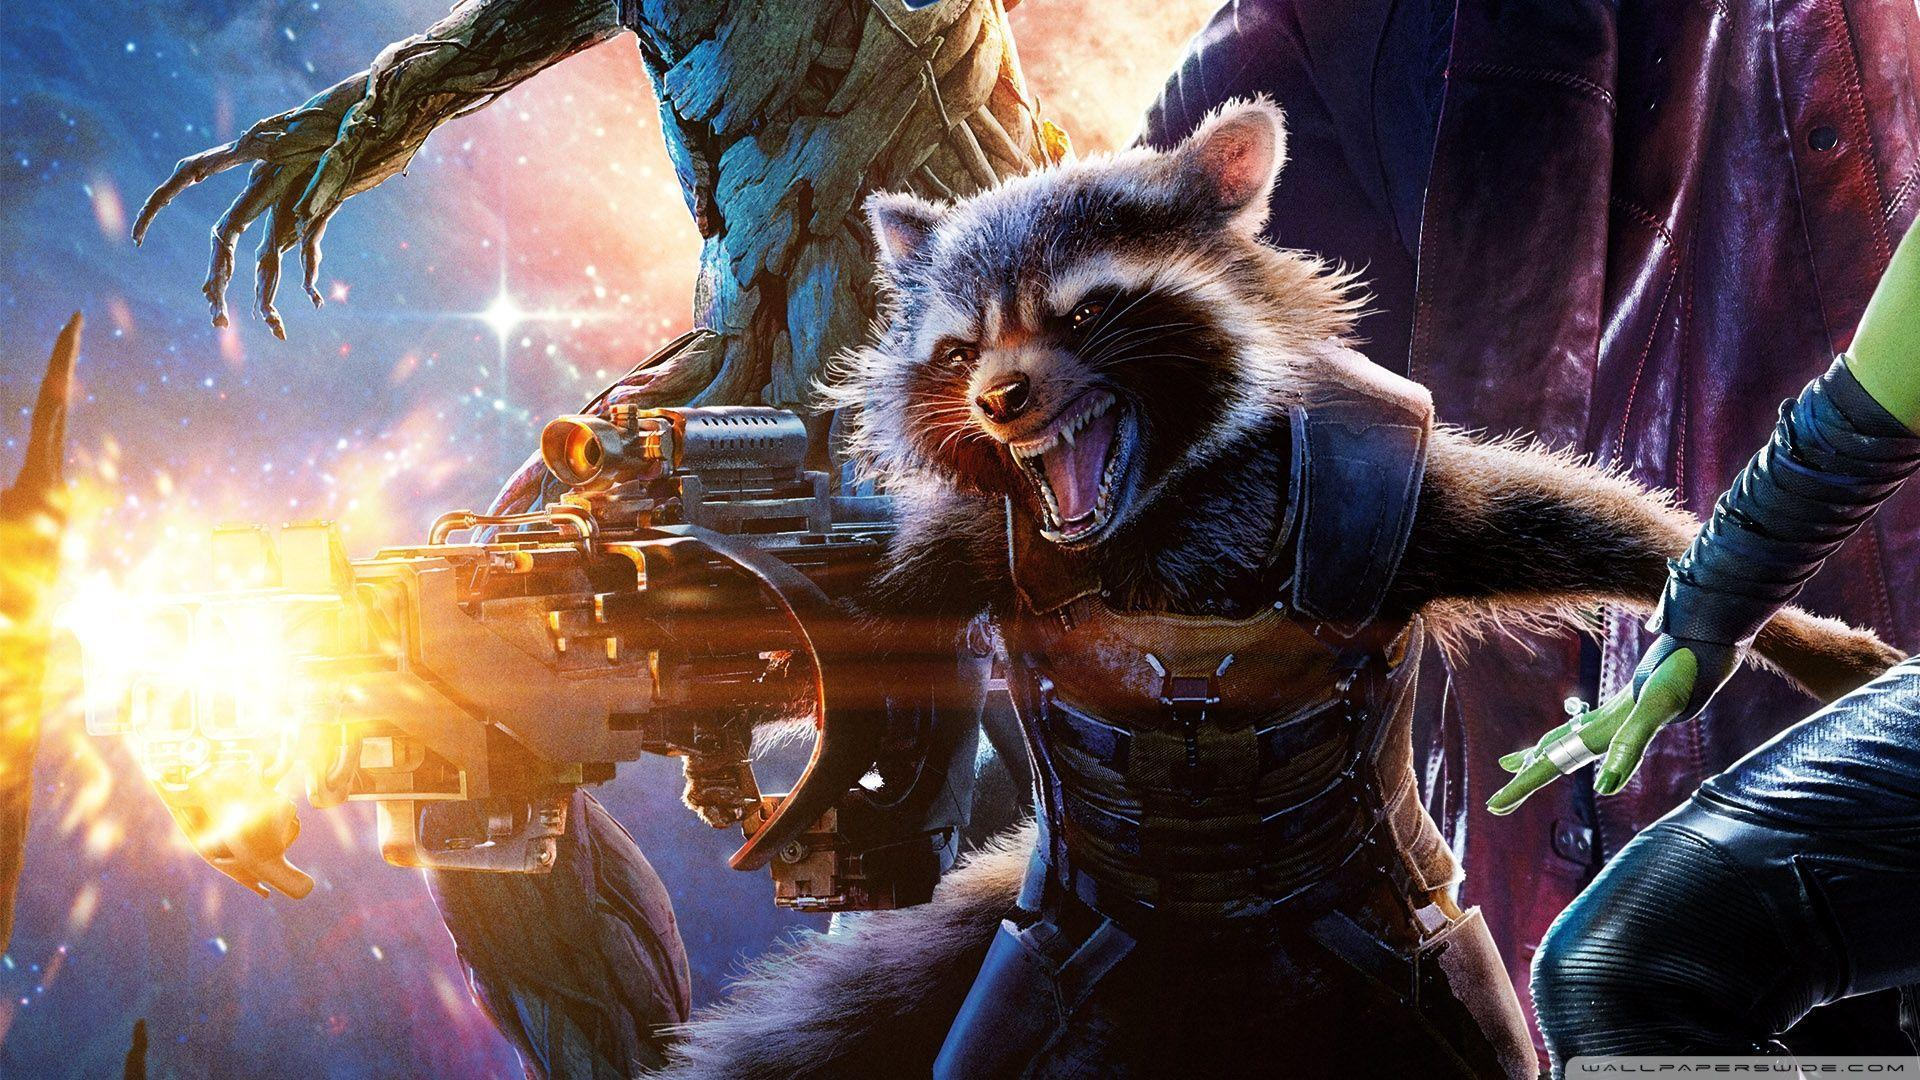 Guardians of the Galaxy Rocket Raccoon HD desktop wallpapers